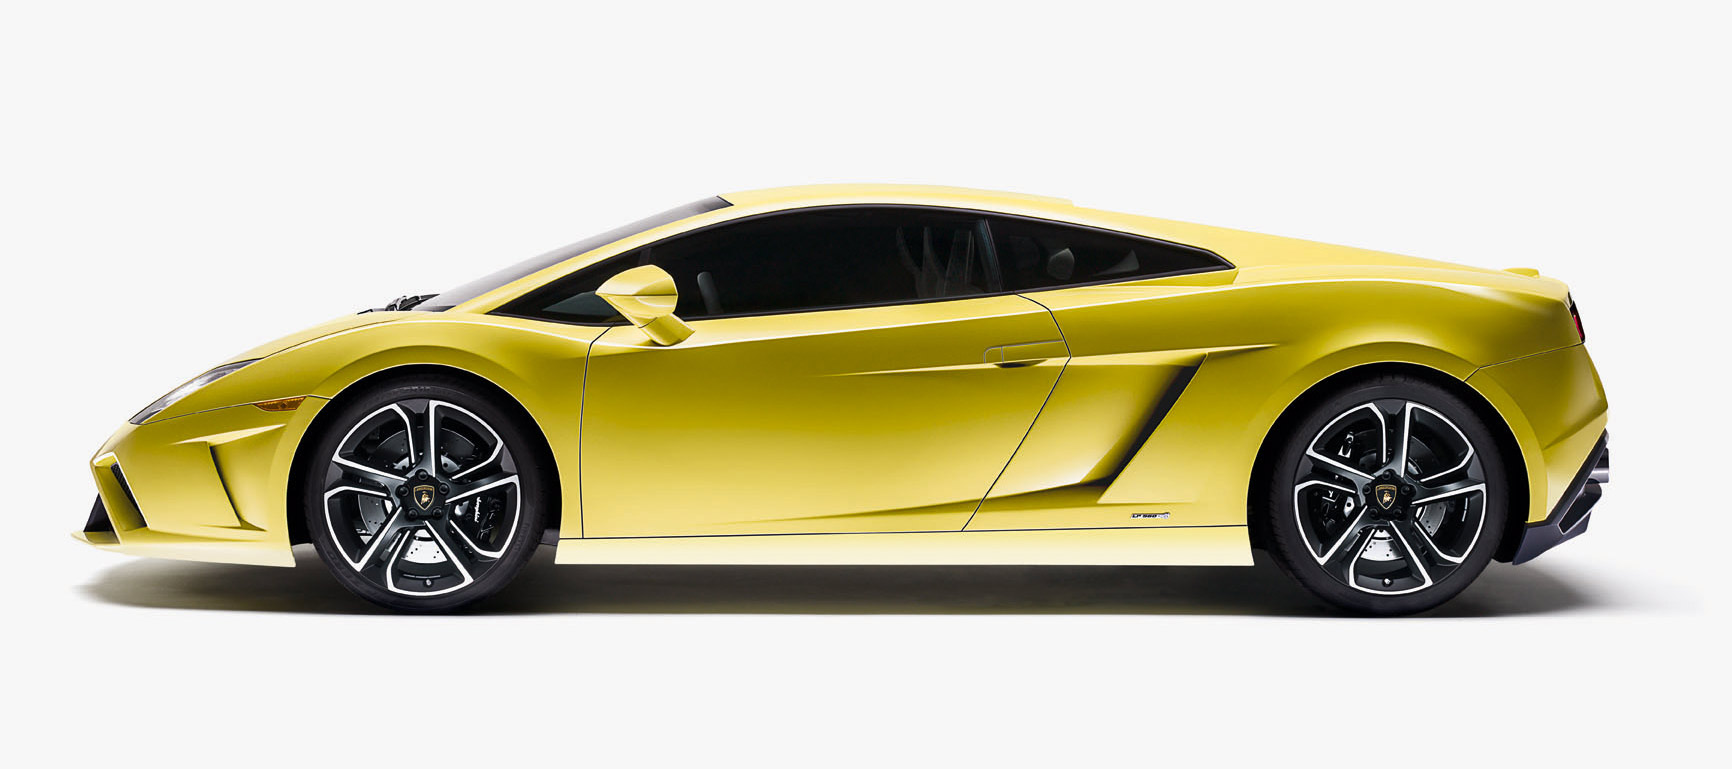 new_gallardo_lp_560-4_03_low